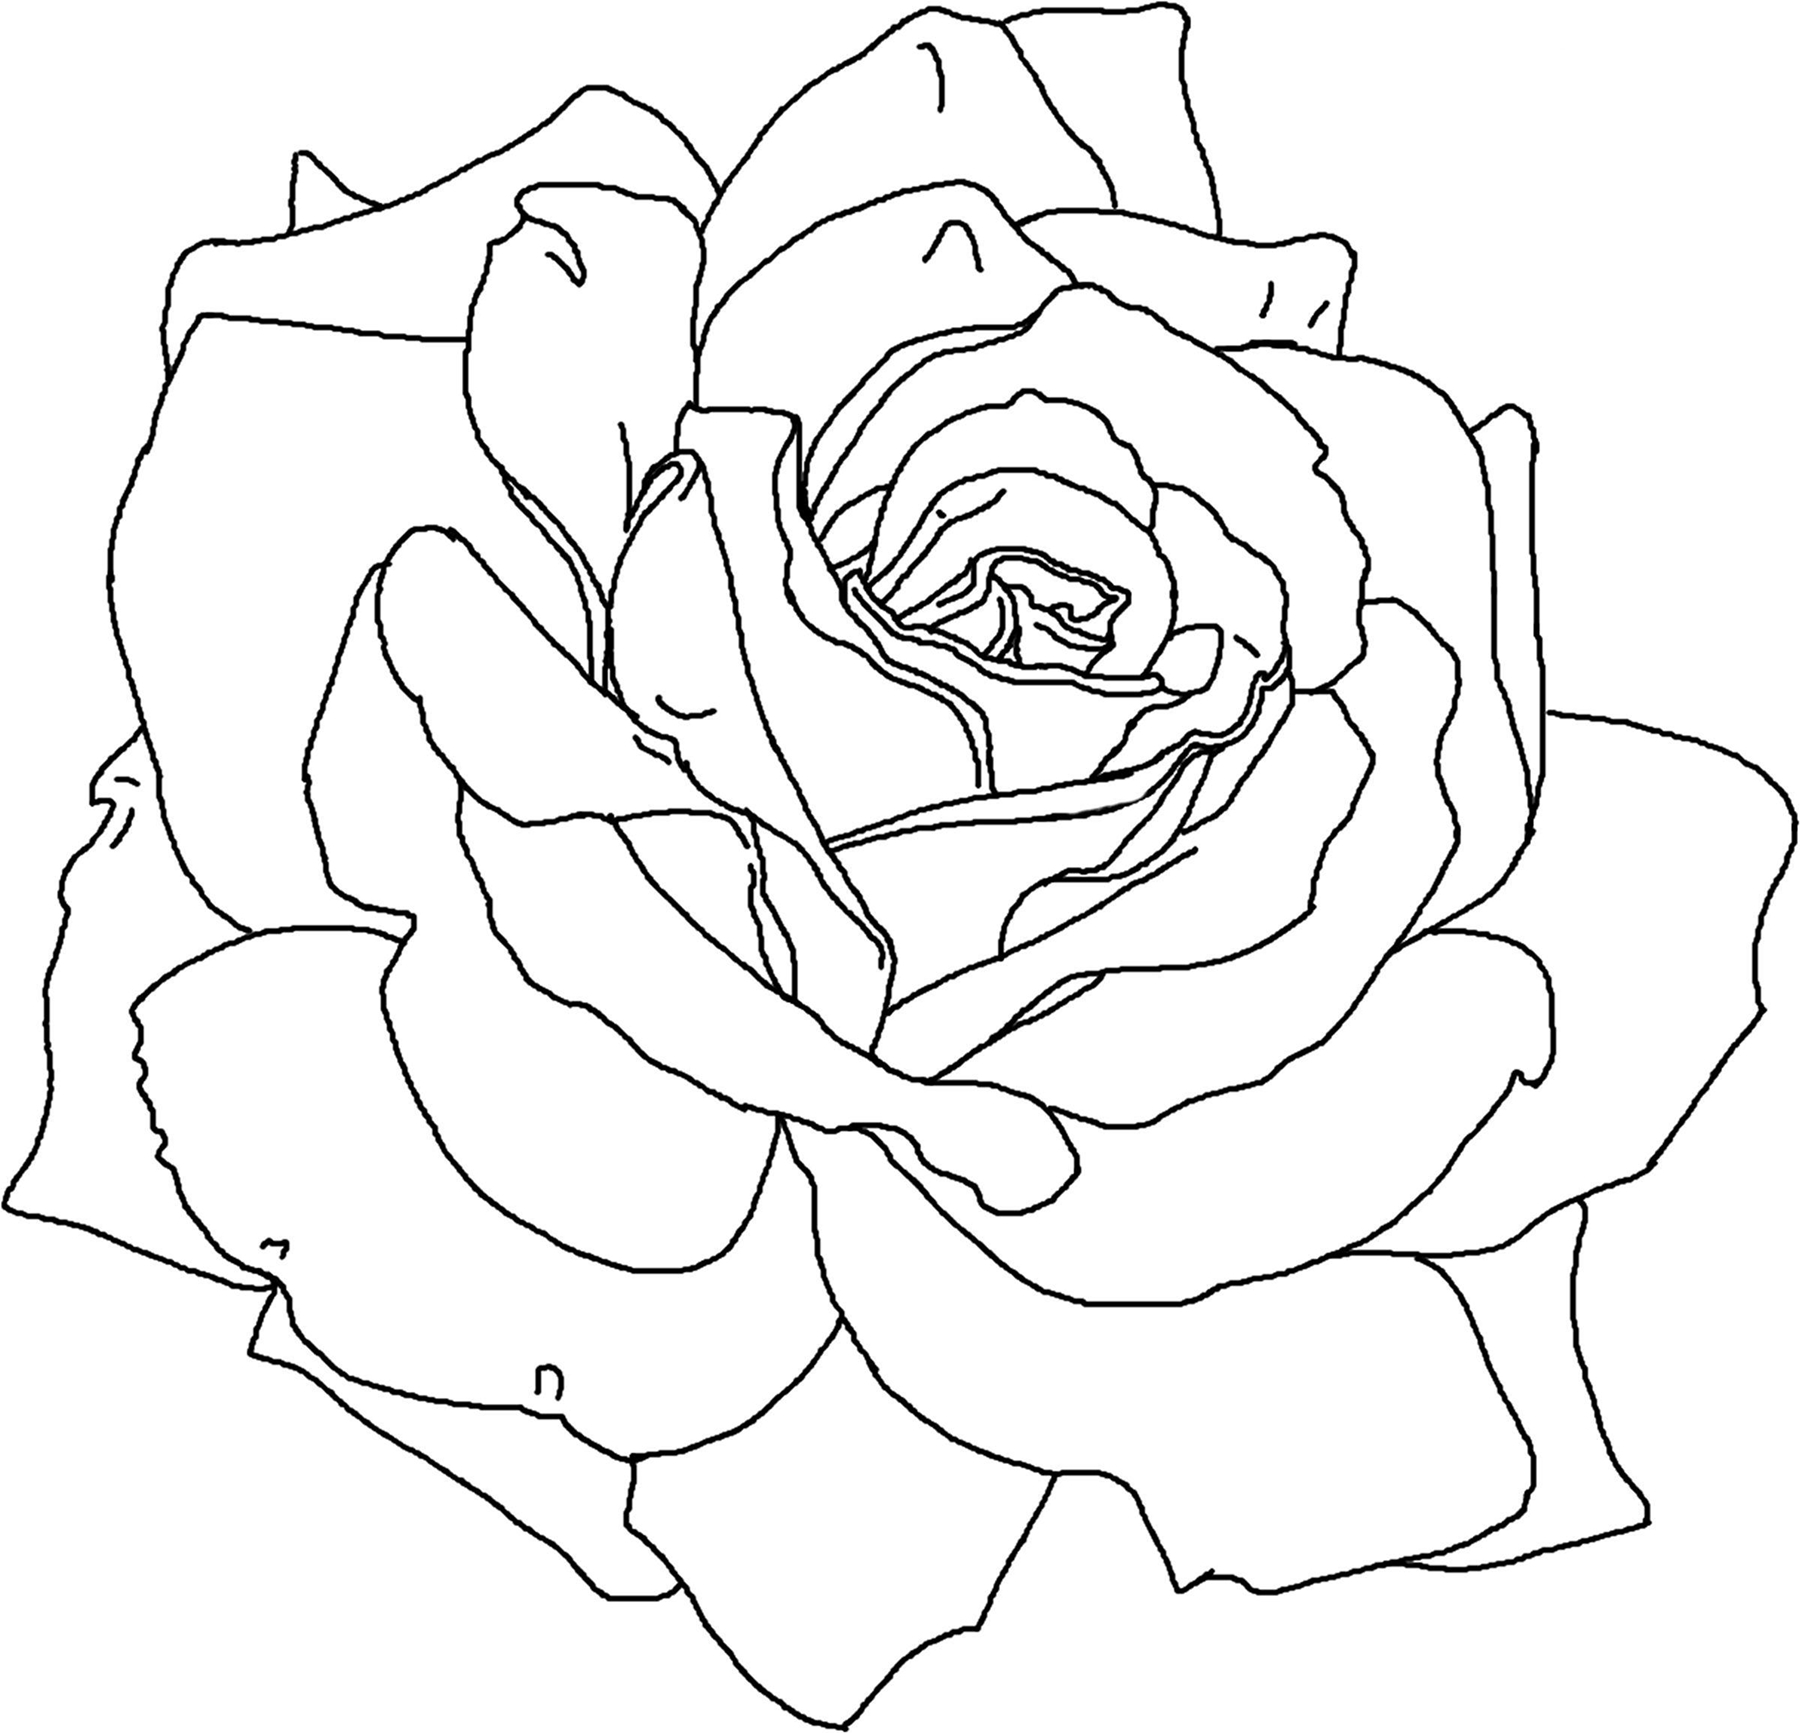 Line Art Rose : Free printable flower coloring pages for kids best